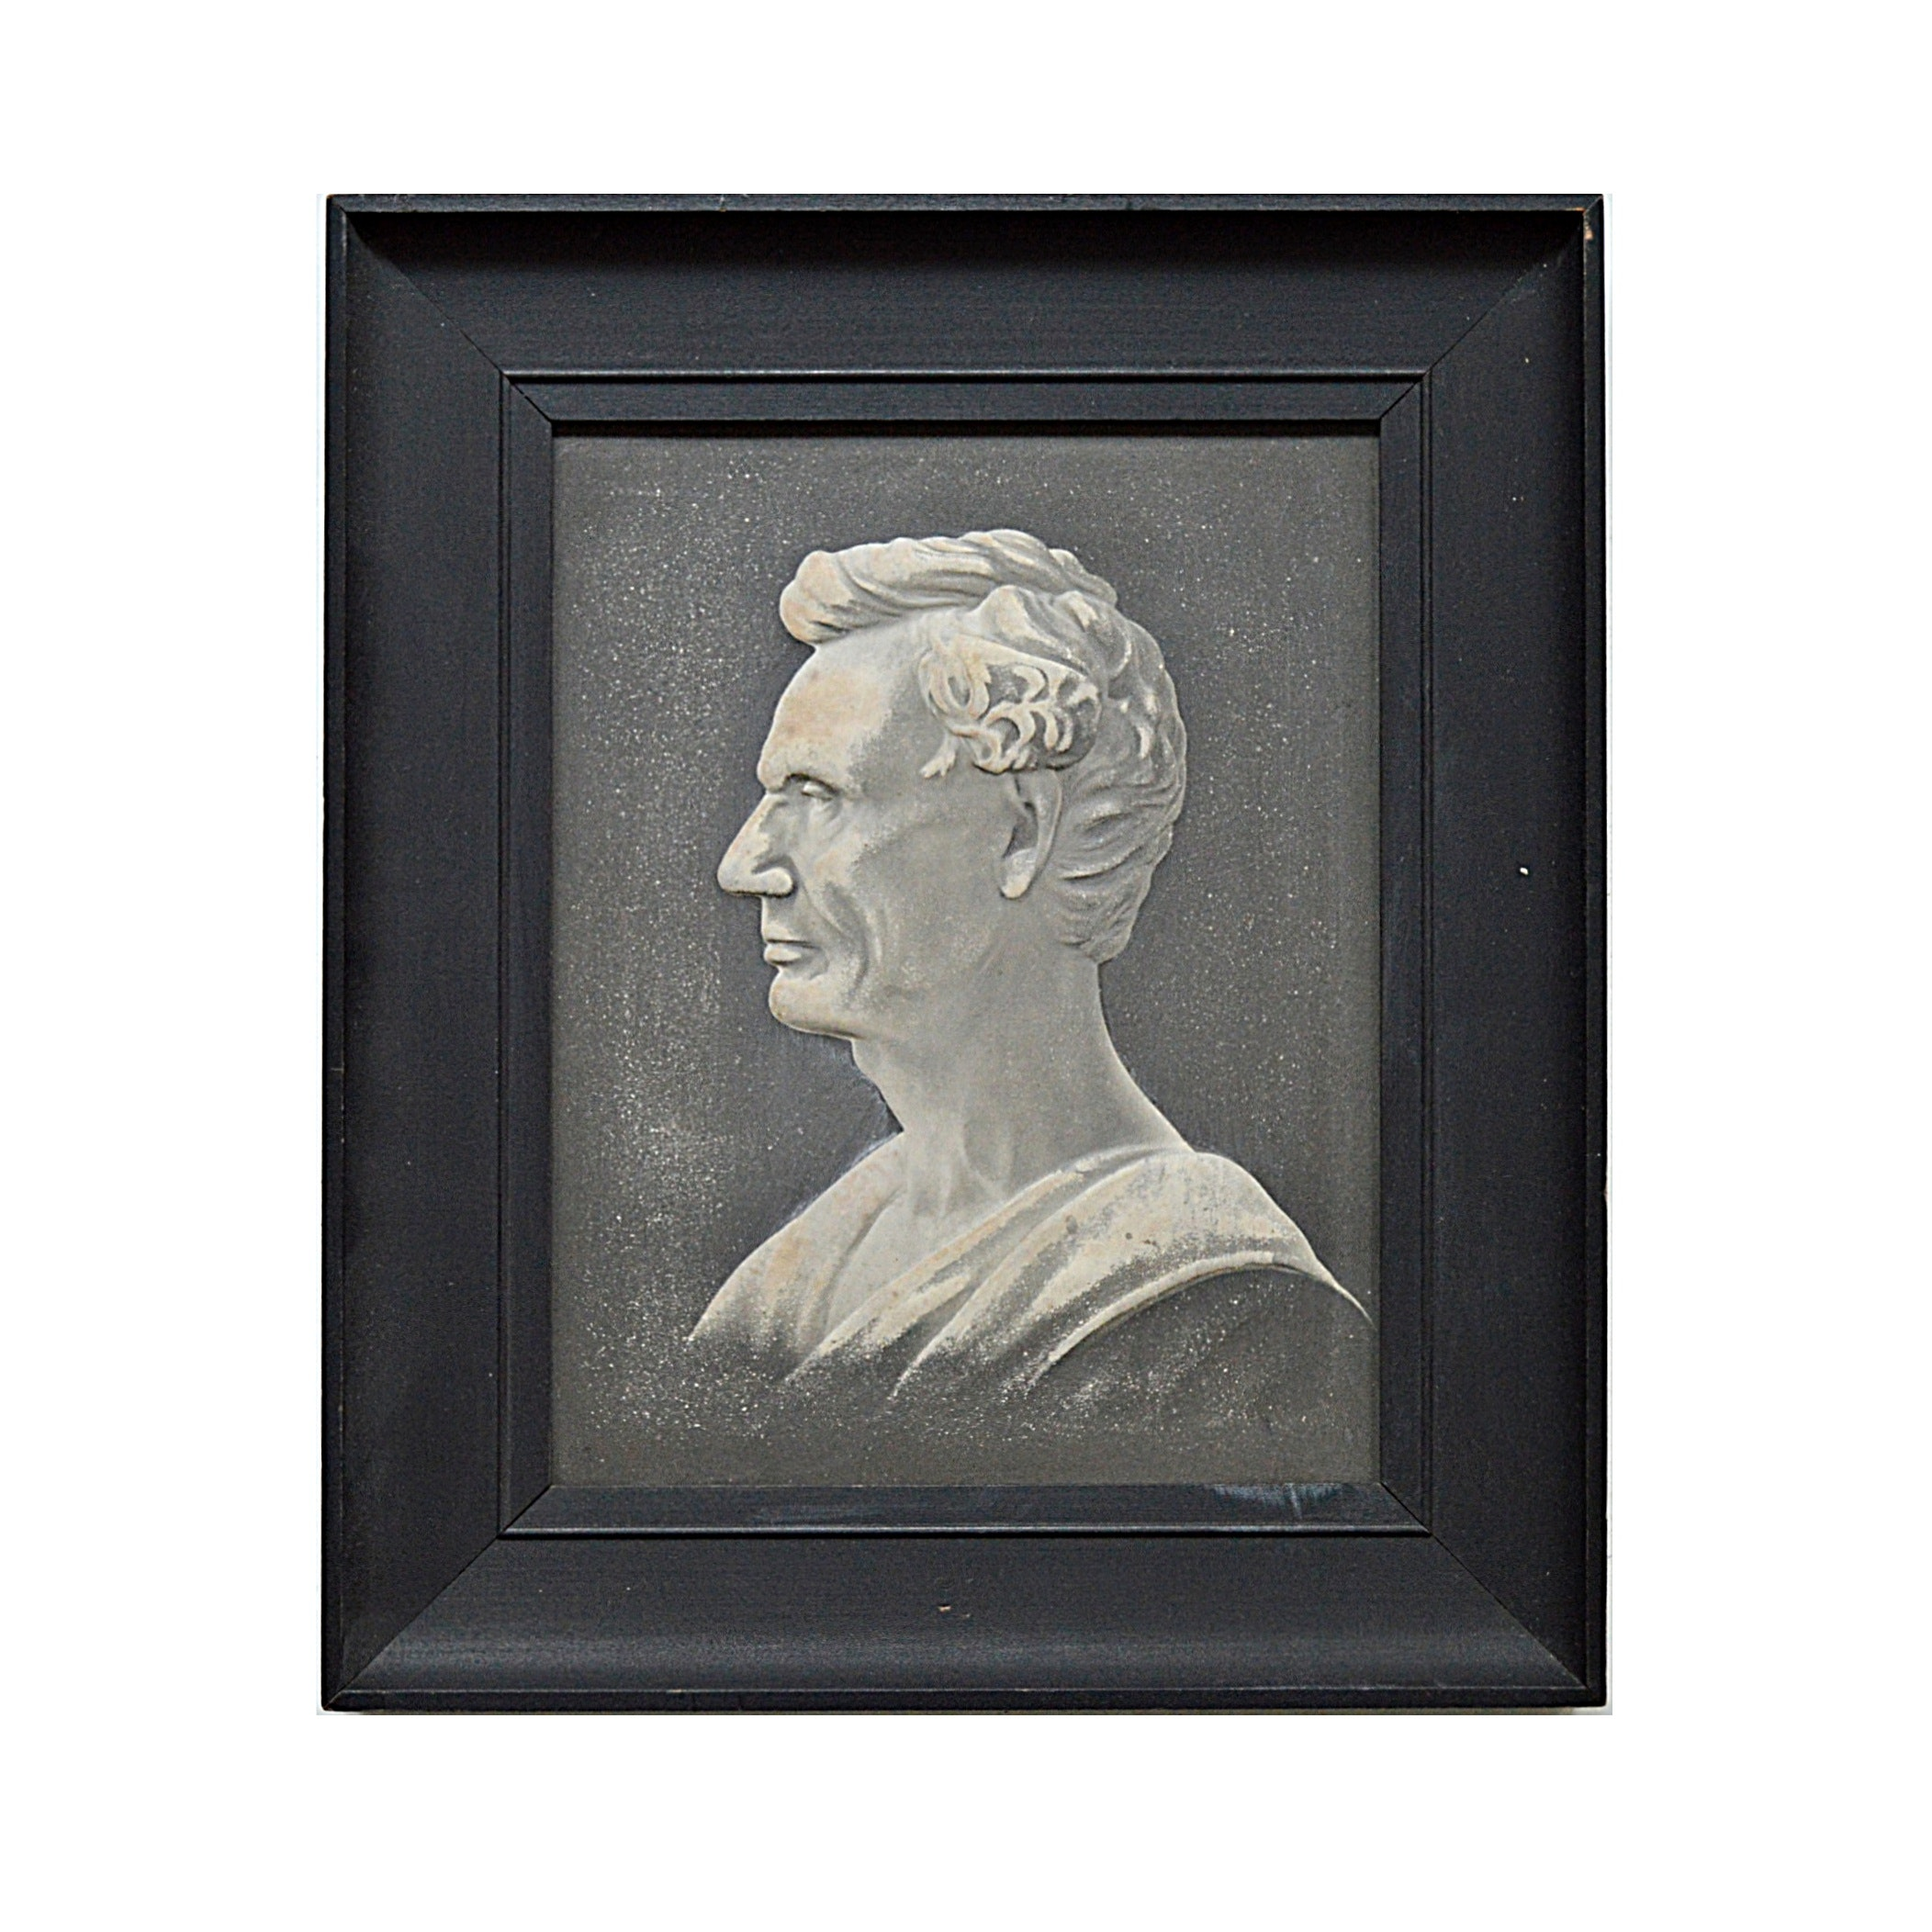 Vintage Embossed Lithographic Portrait of Lincoln